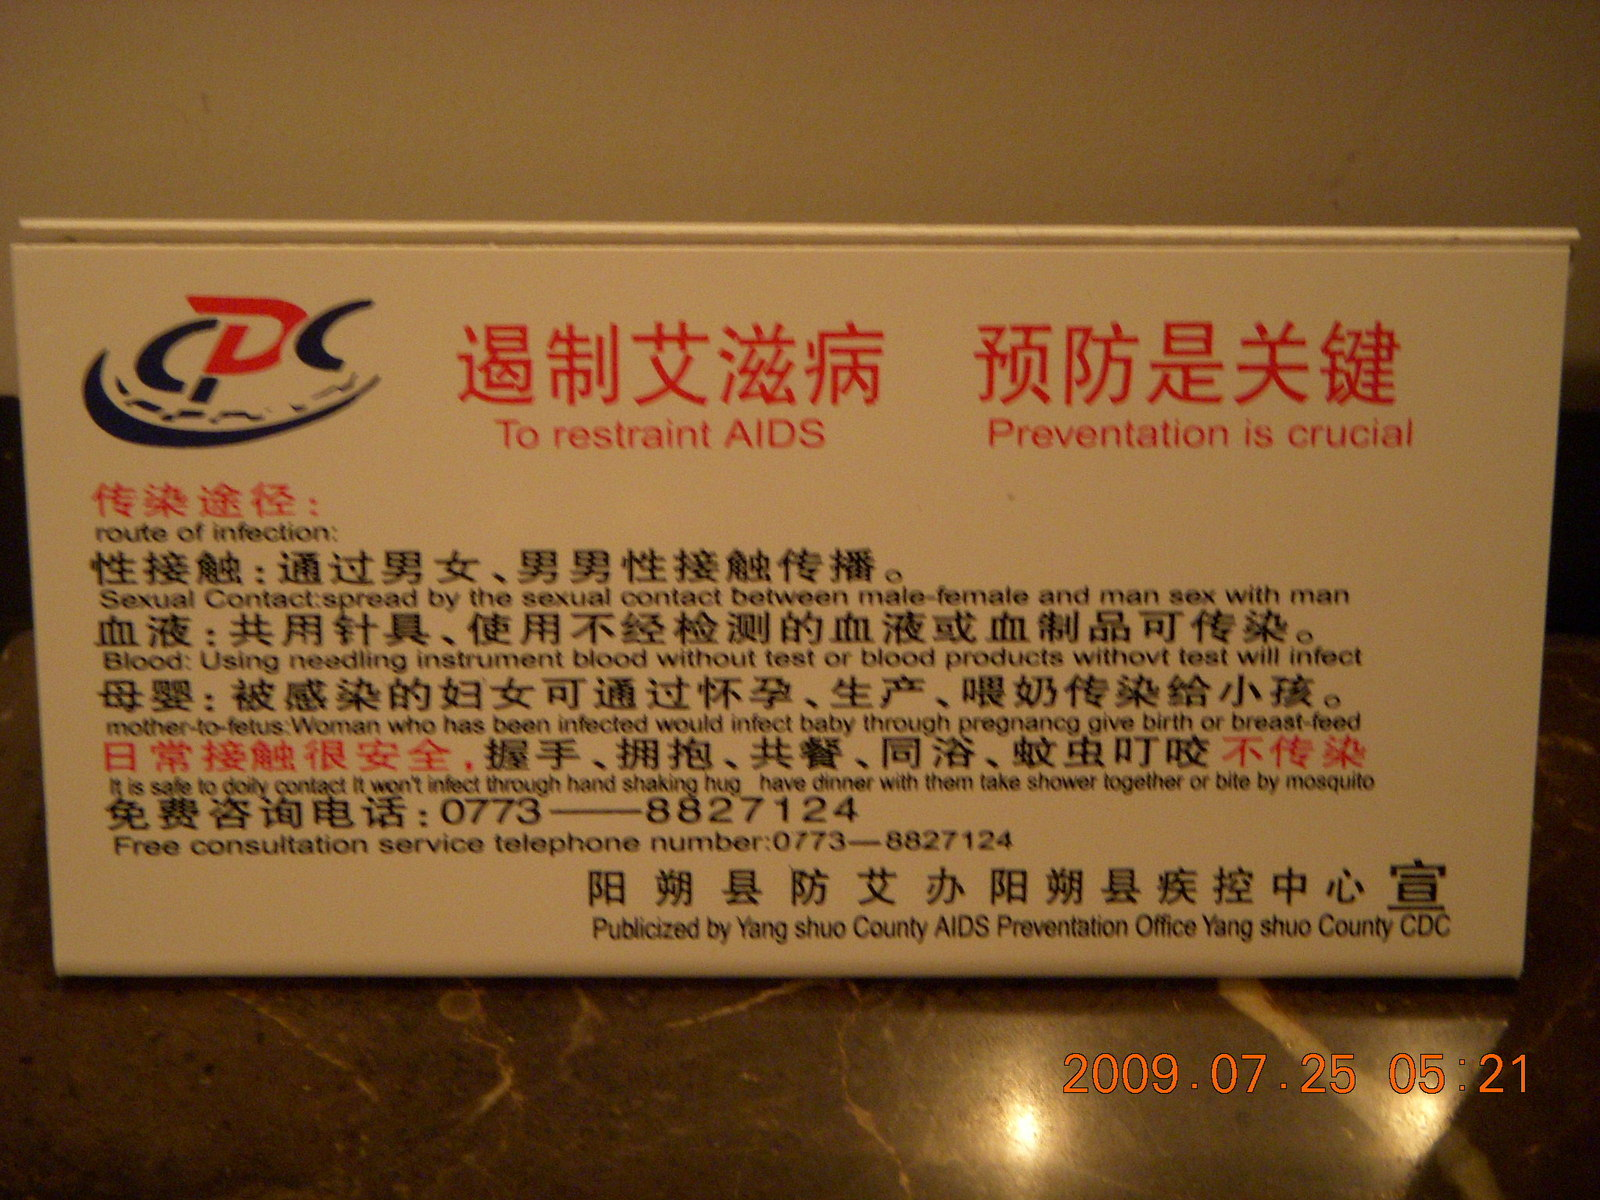 China eclipse - Yangshuo hotel AIDS warning